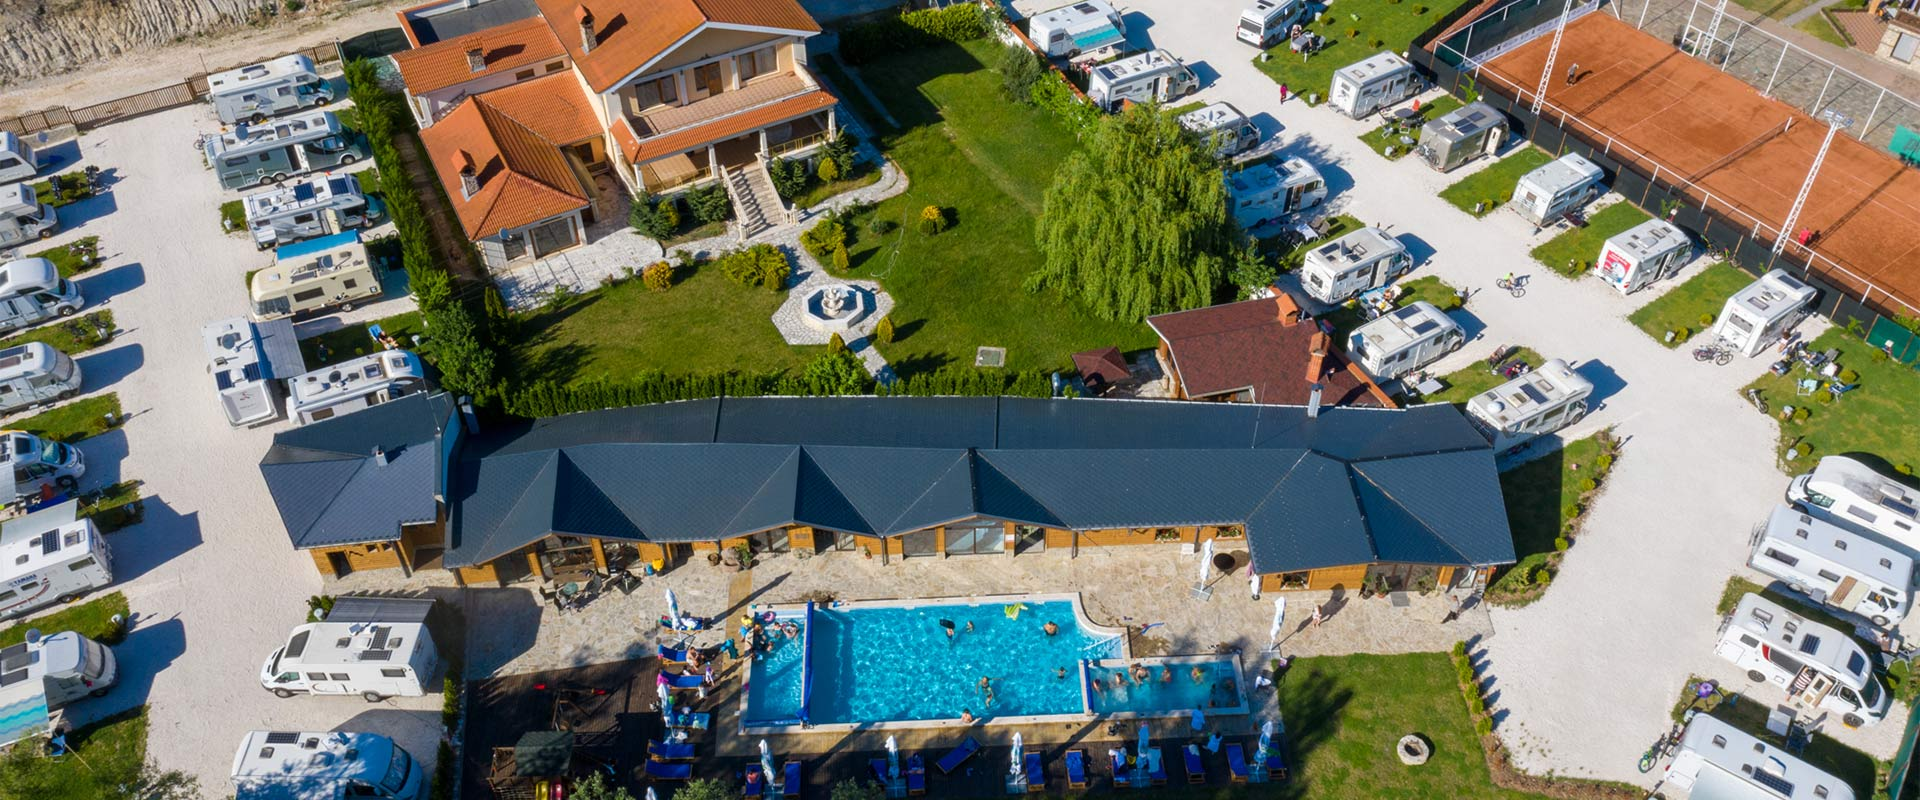 THERMAL CAMPING VELINGRAD